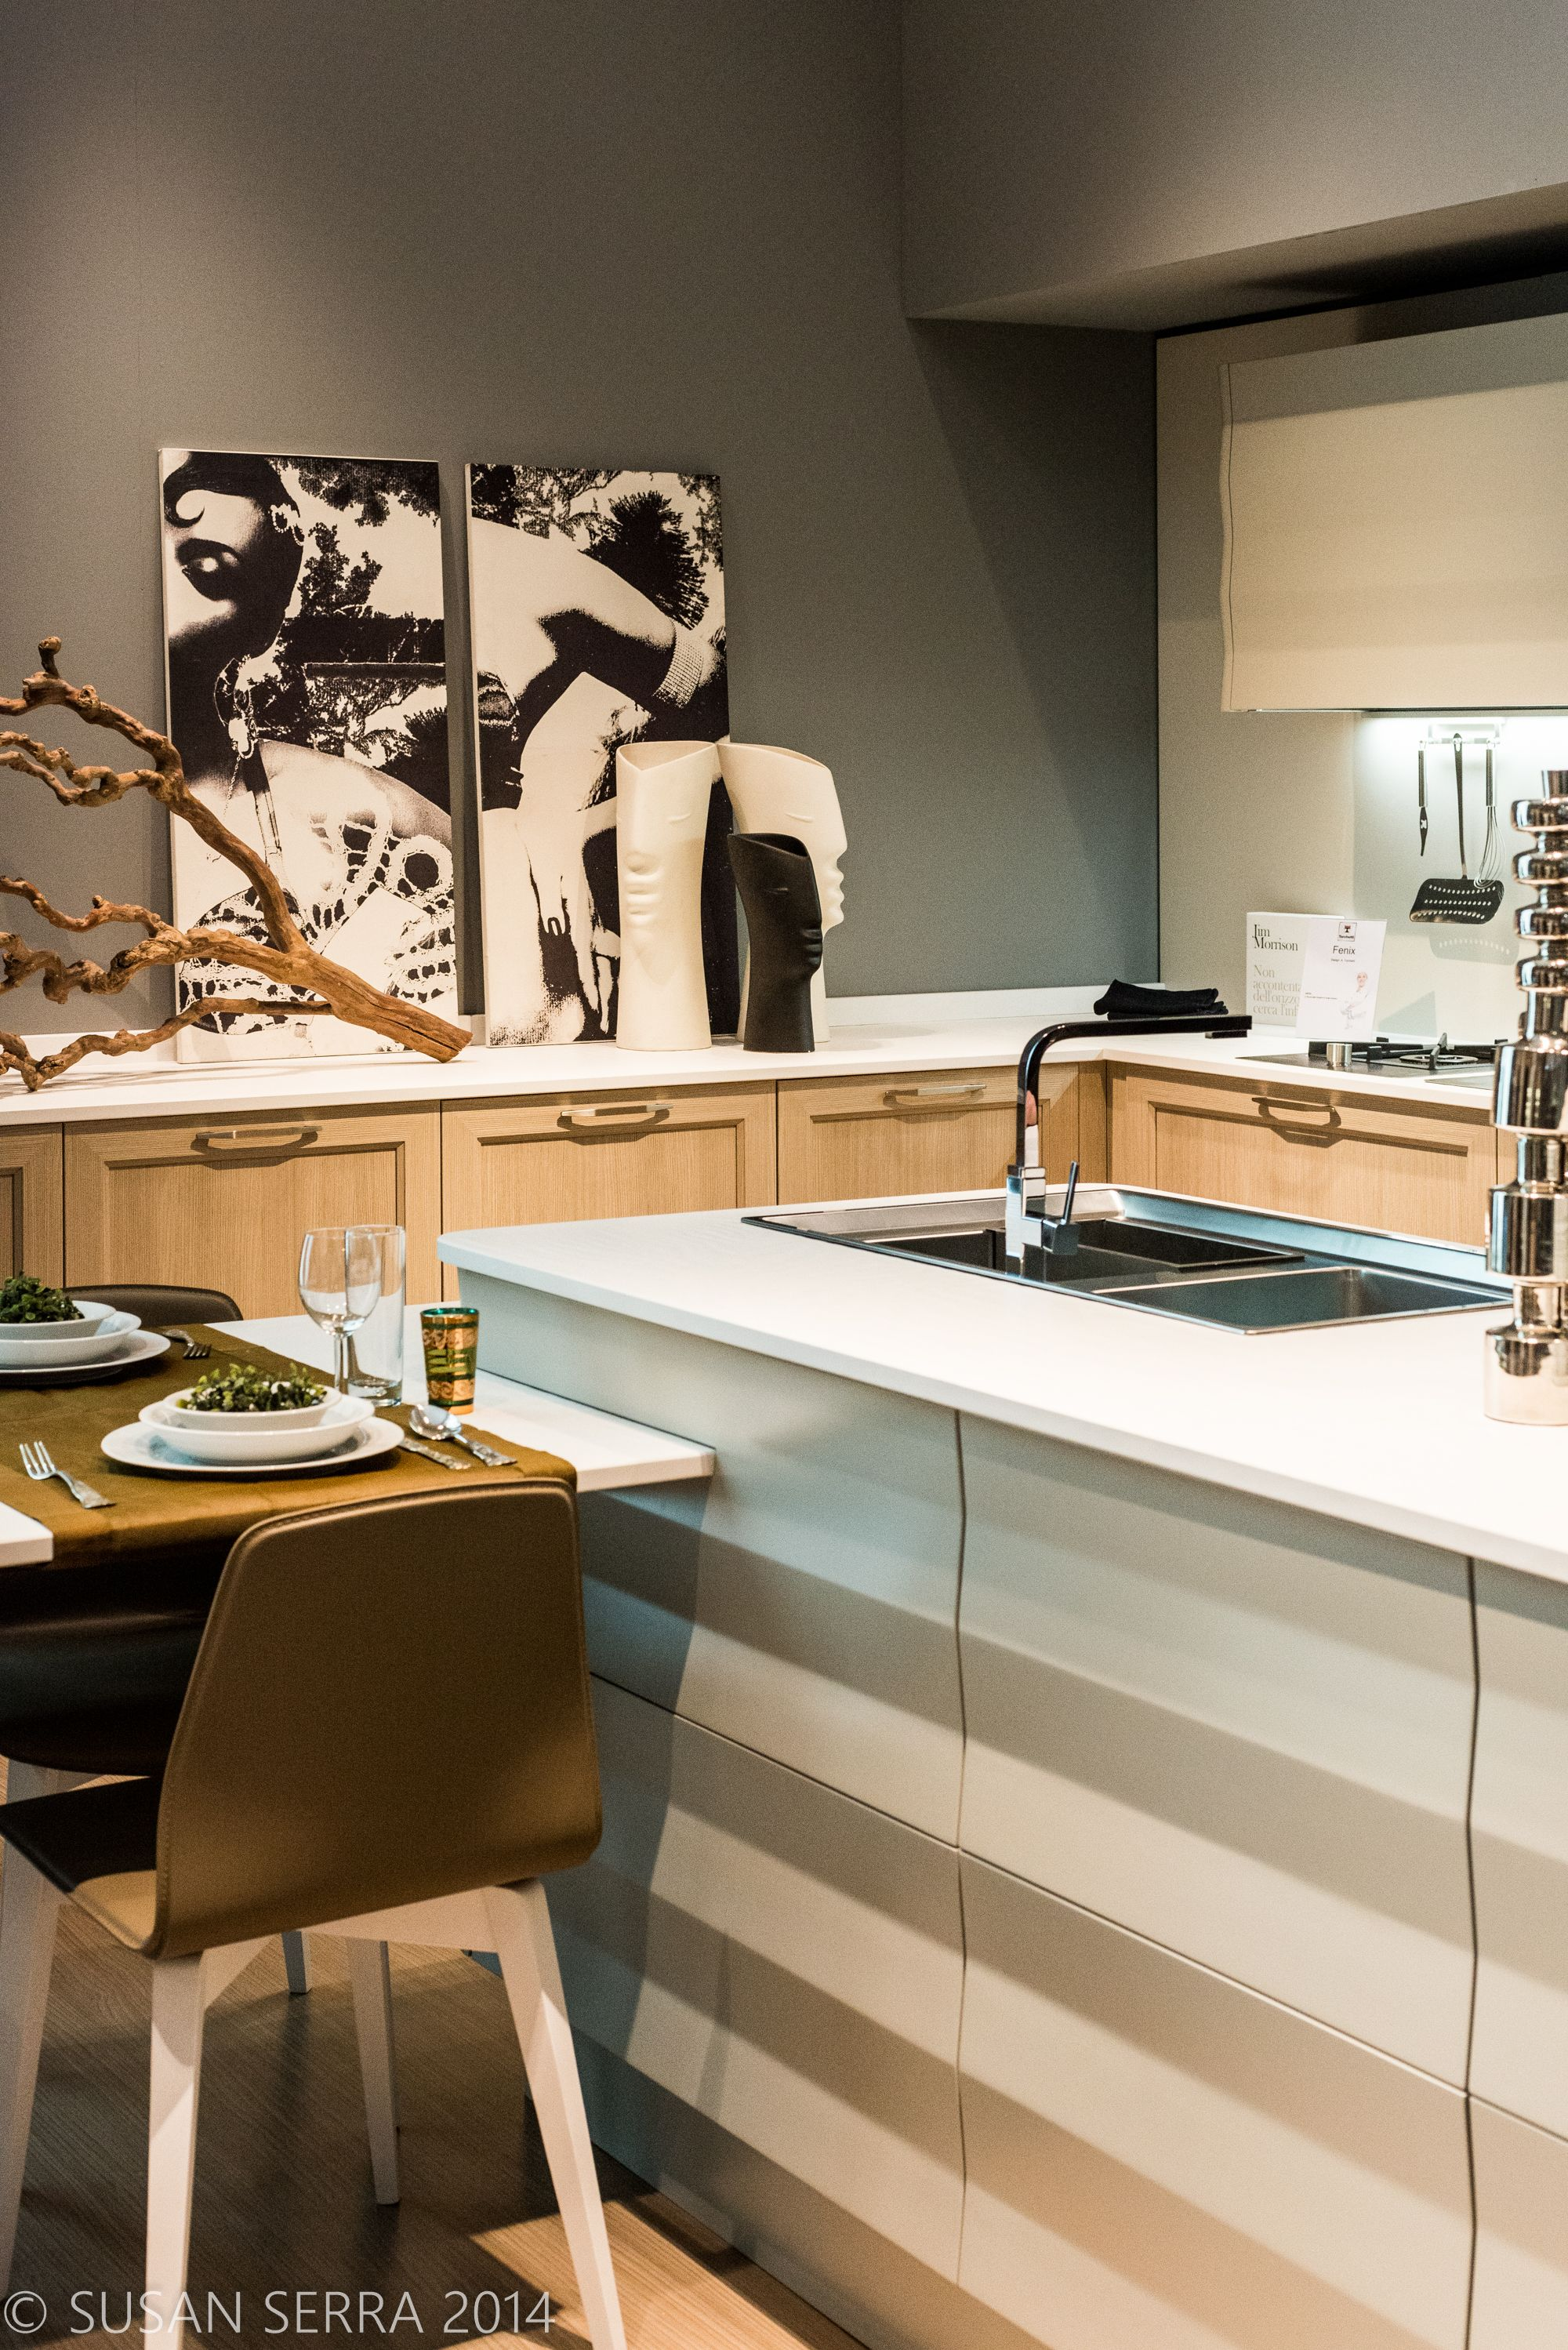 Luxury Kitchen Designs 2014 modern luxury kitchen design features art and modern forms - milan